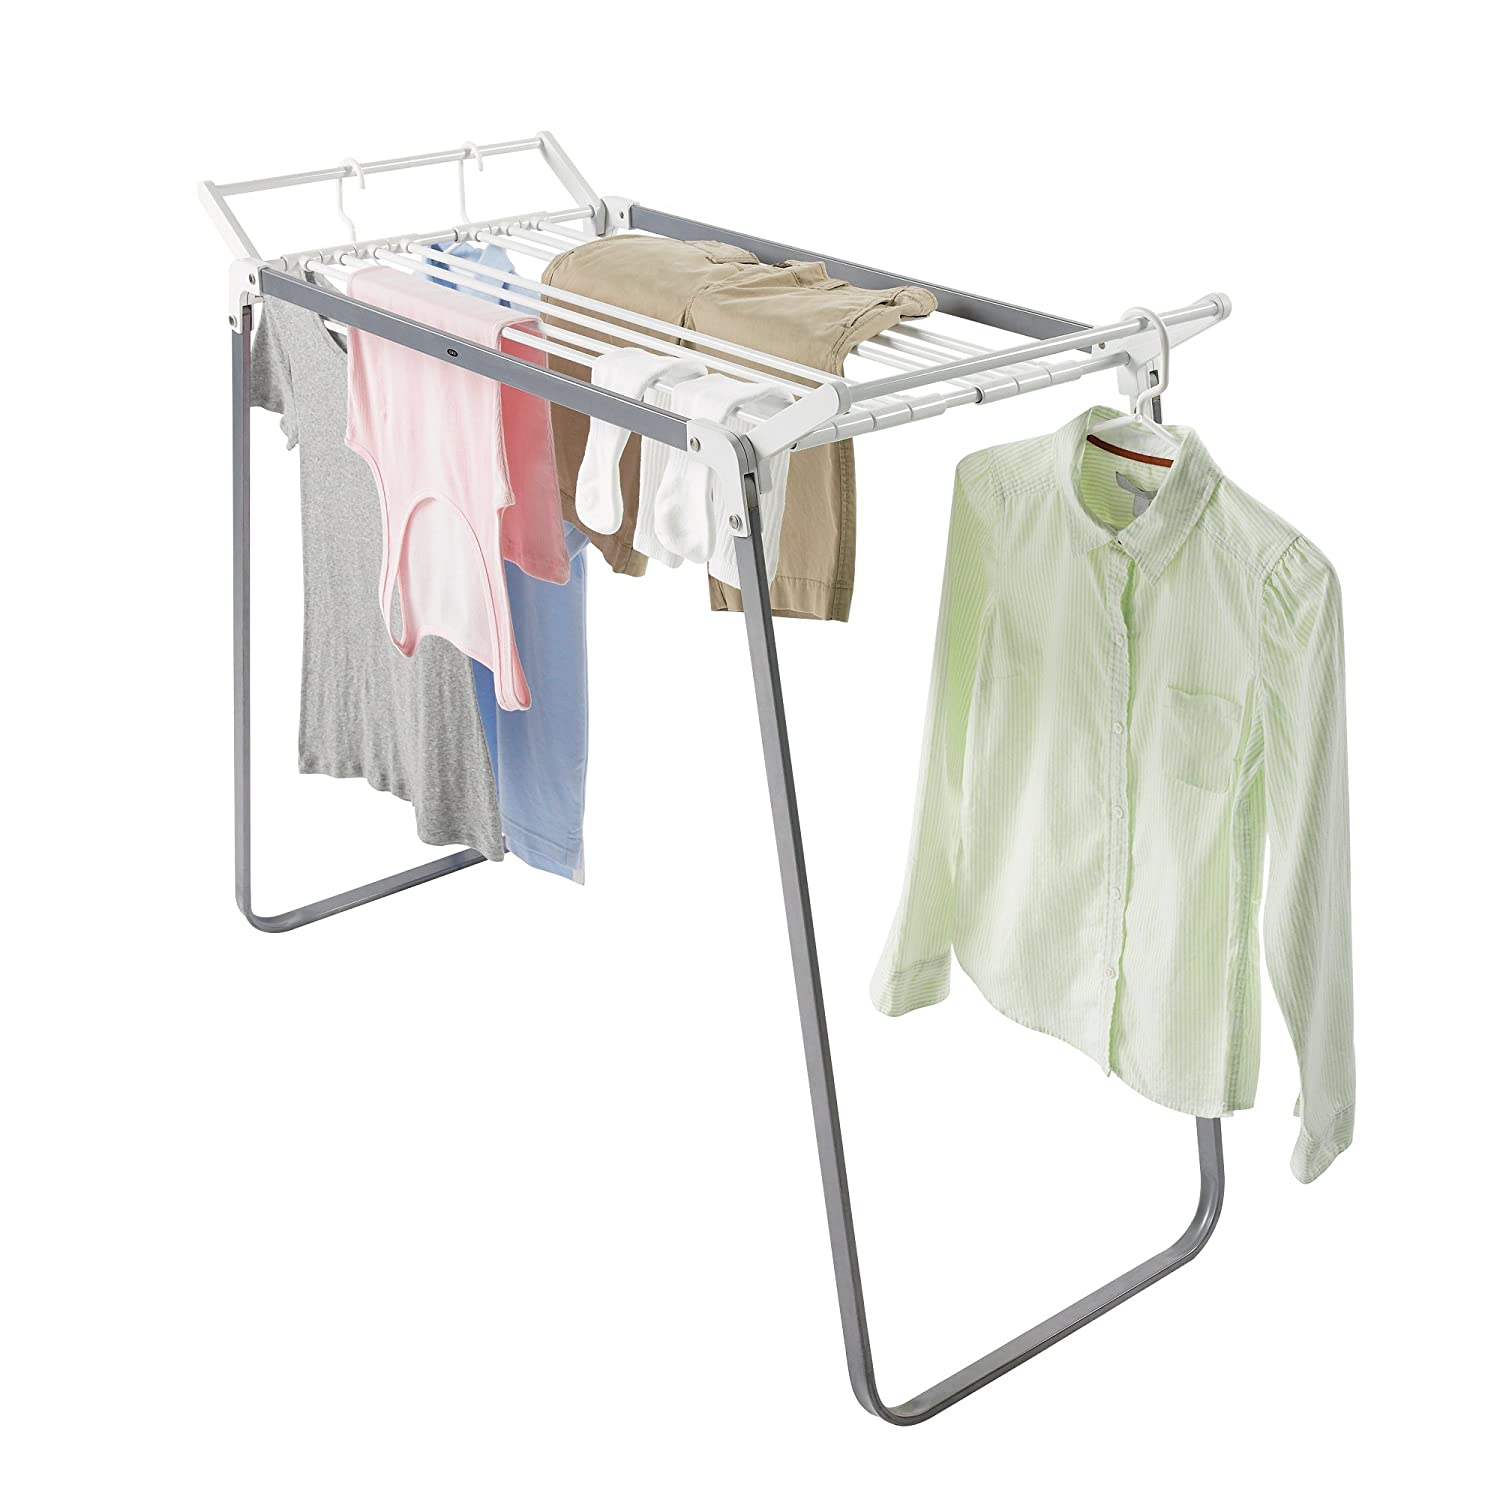 Clothes Drying Rack for Small Spaces | WebNuggetz.com